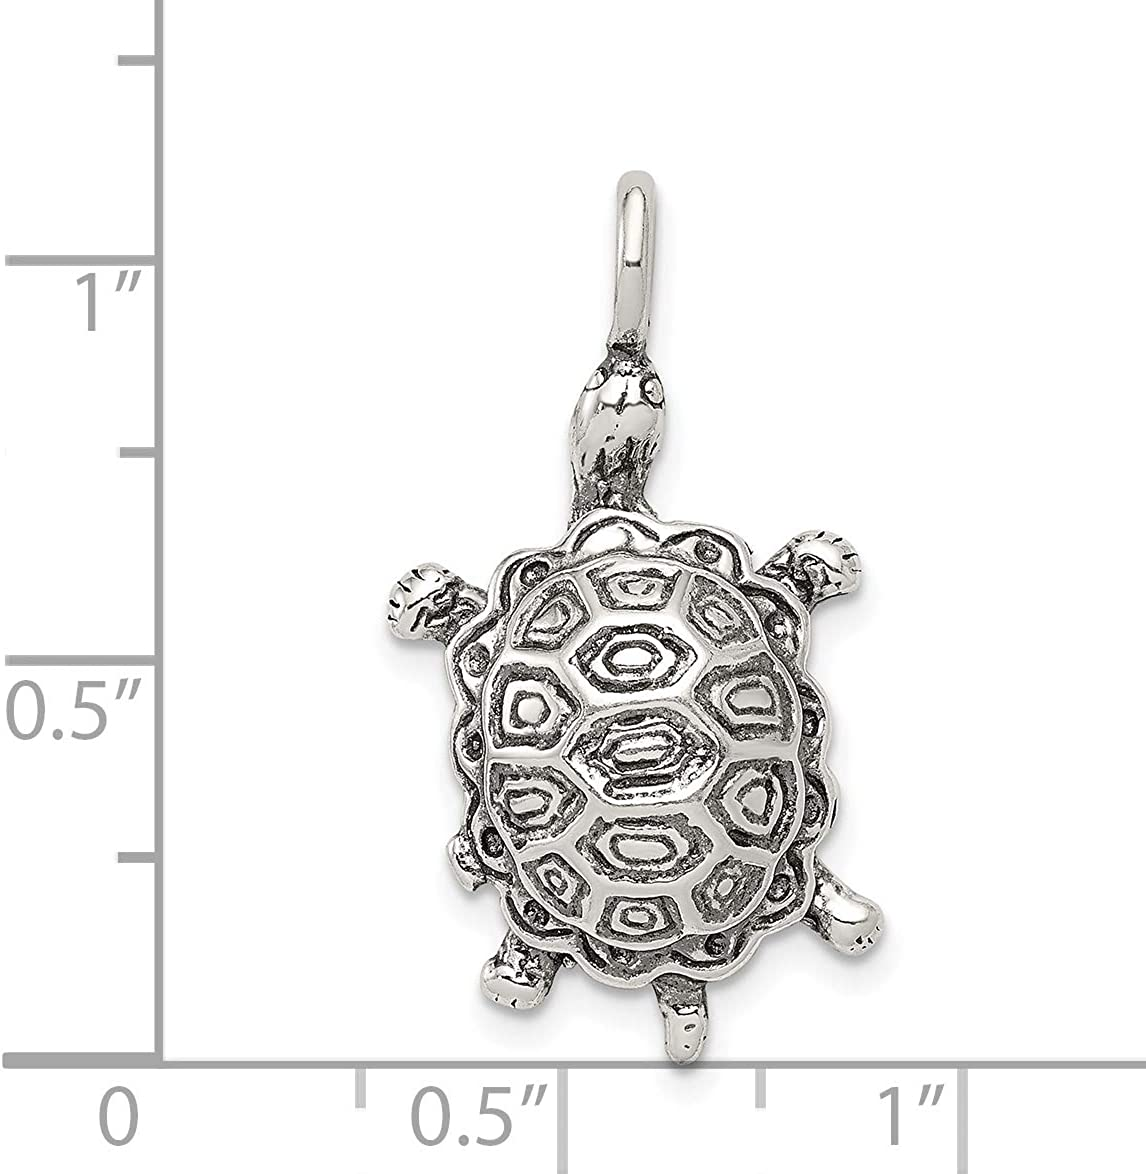 Mireval Sterling Silver Antiqued Turtle Pendant approximately 30 x 16 mm